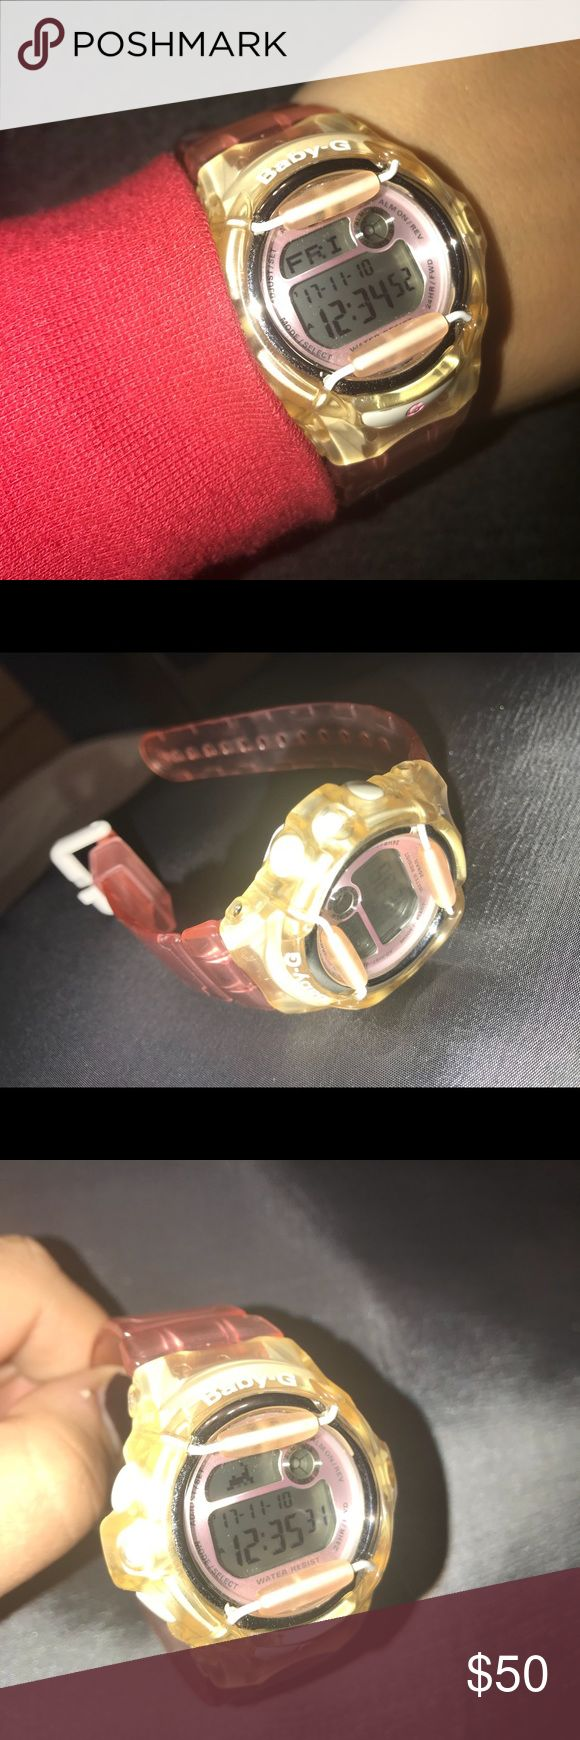 G shock baby g pink jelly watch Bought a few years ago, never wore it. No box. Like new. G-Shock Accessories Watches